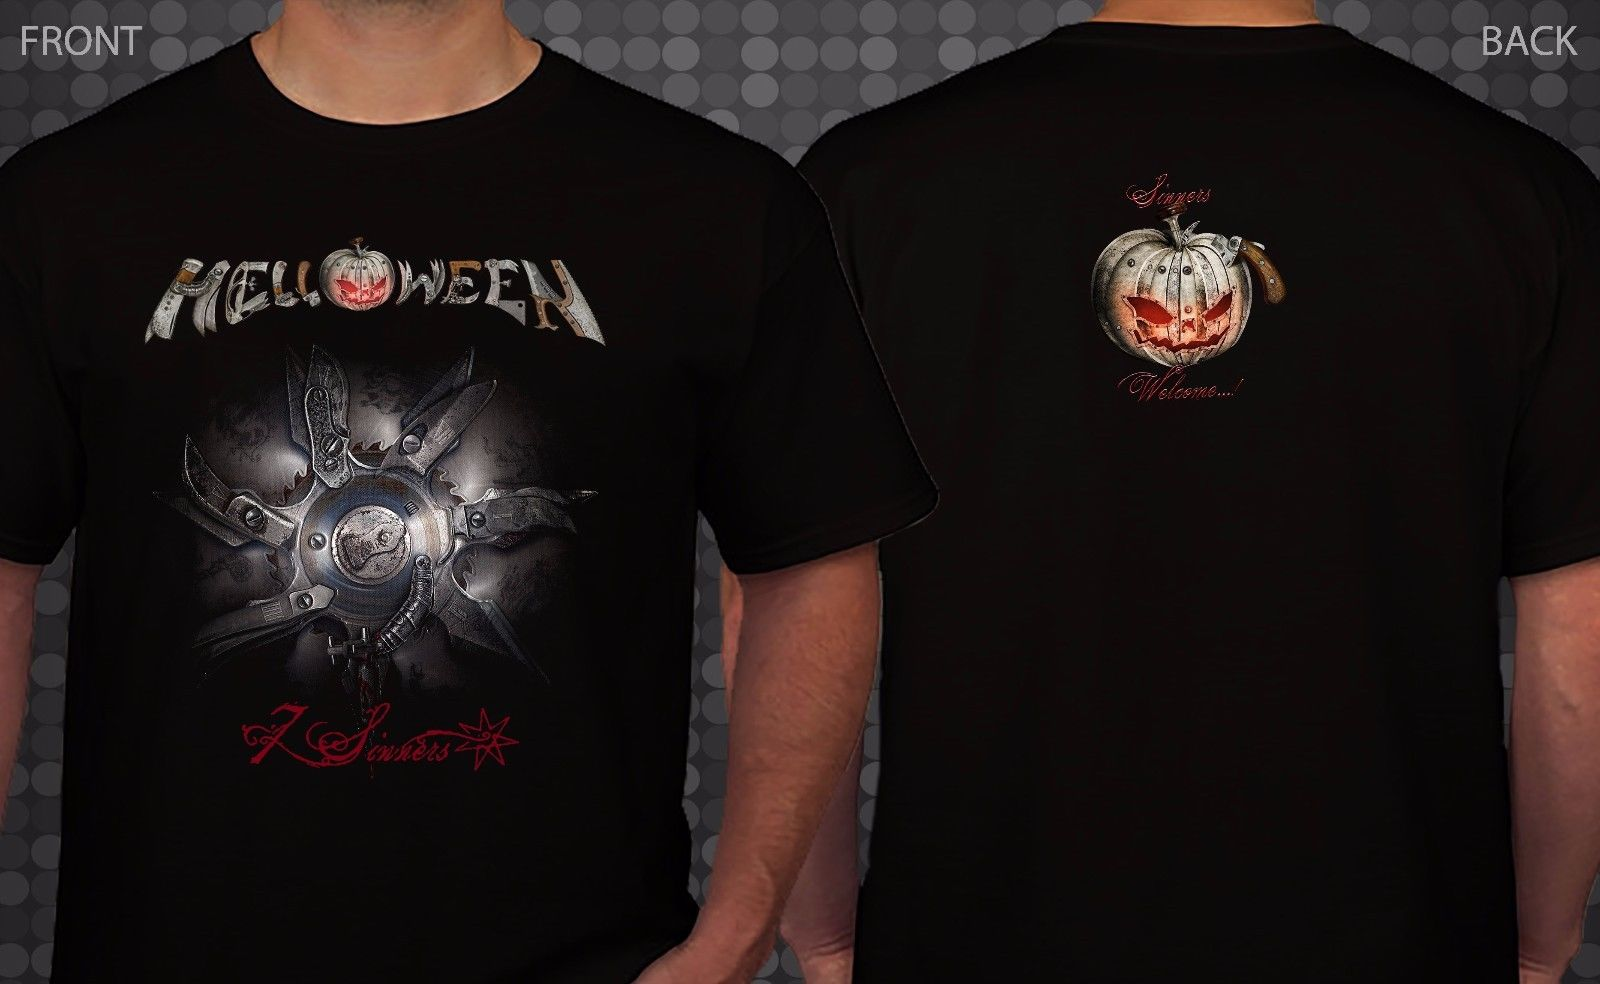 HELLOWEEN 7 Sinners German Heavy Metal Band T shirt SIZES S To 3XL New Design Cotton Male T Shirt Designing Top Tee in T Shirts from Men 39 s Clothing